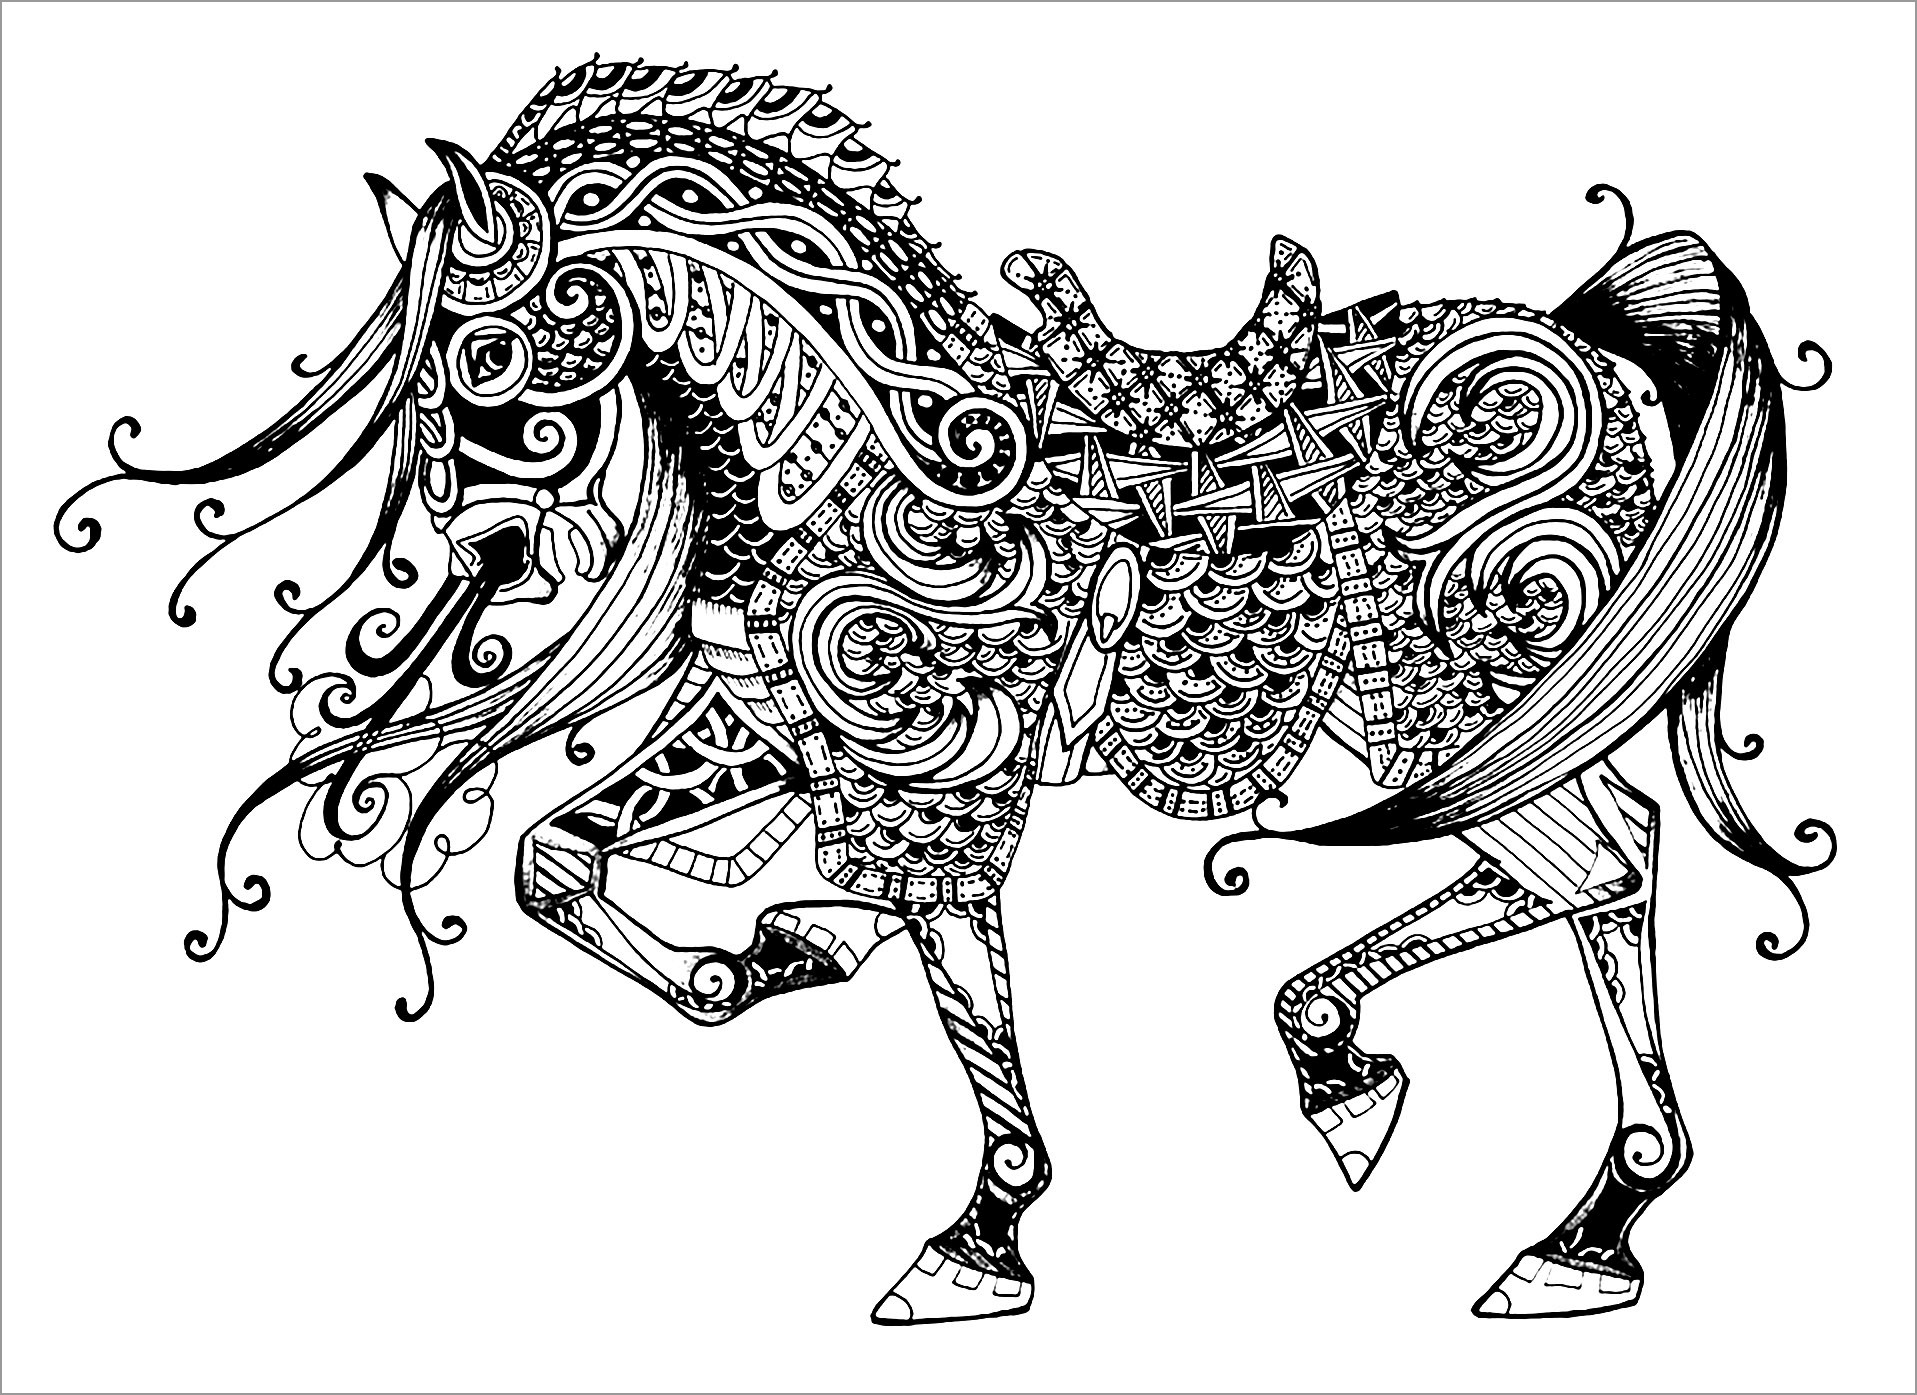 Majestic Horse Coloring Page for Adults